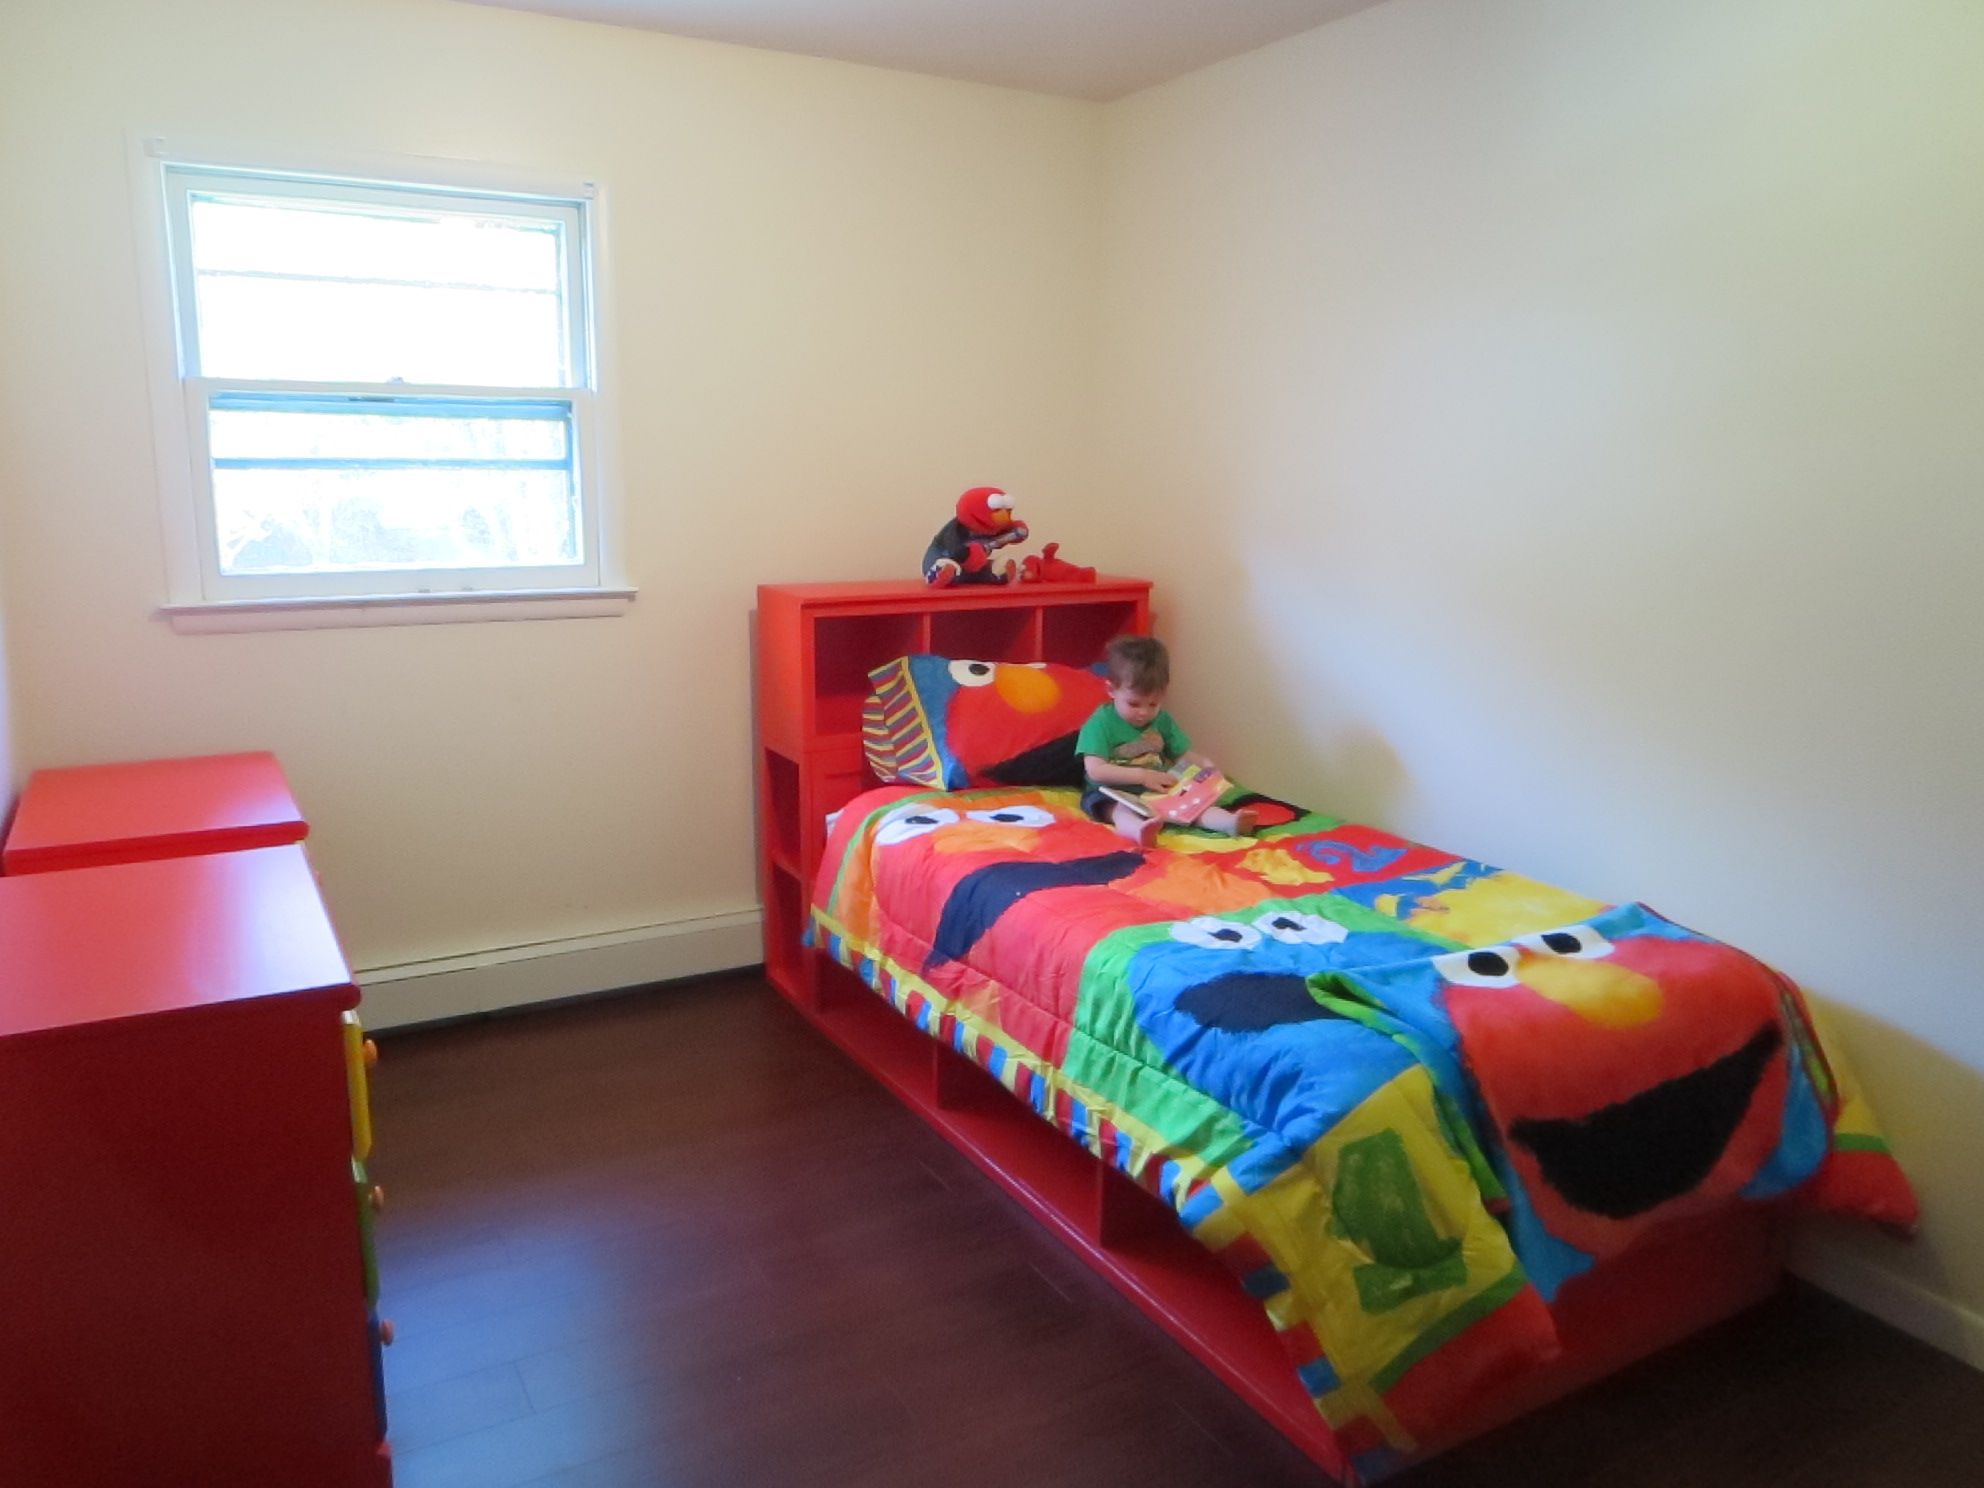 Charlie's Big Kid Bed Do It Yourself Home Projects from